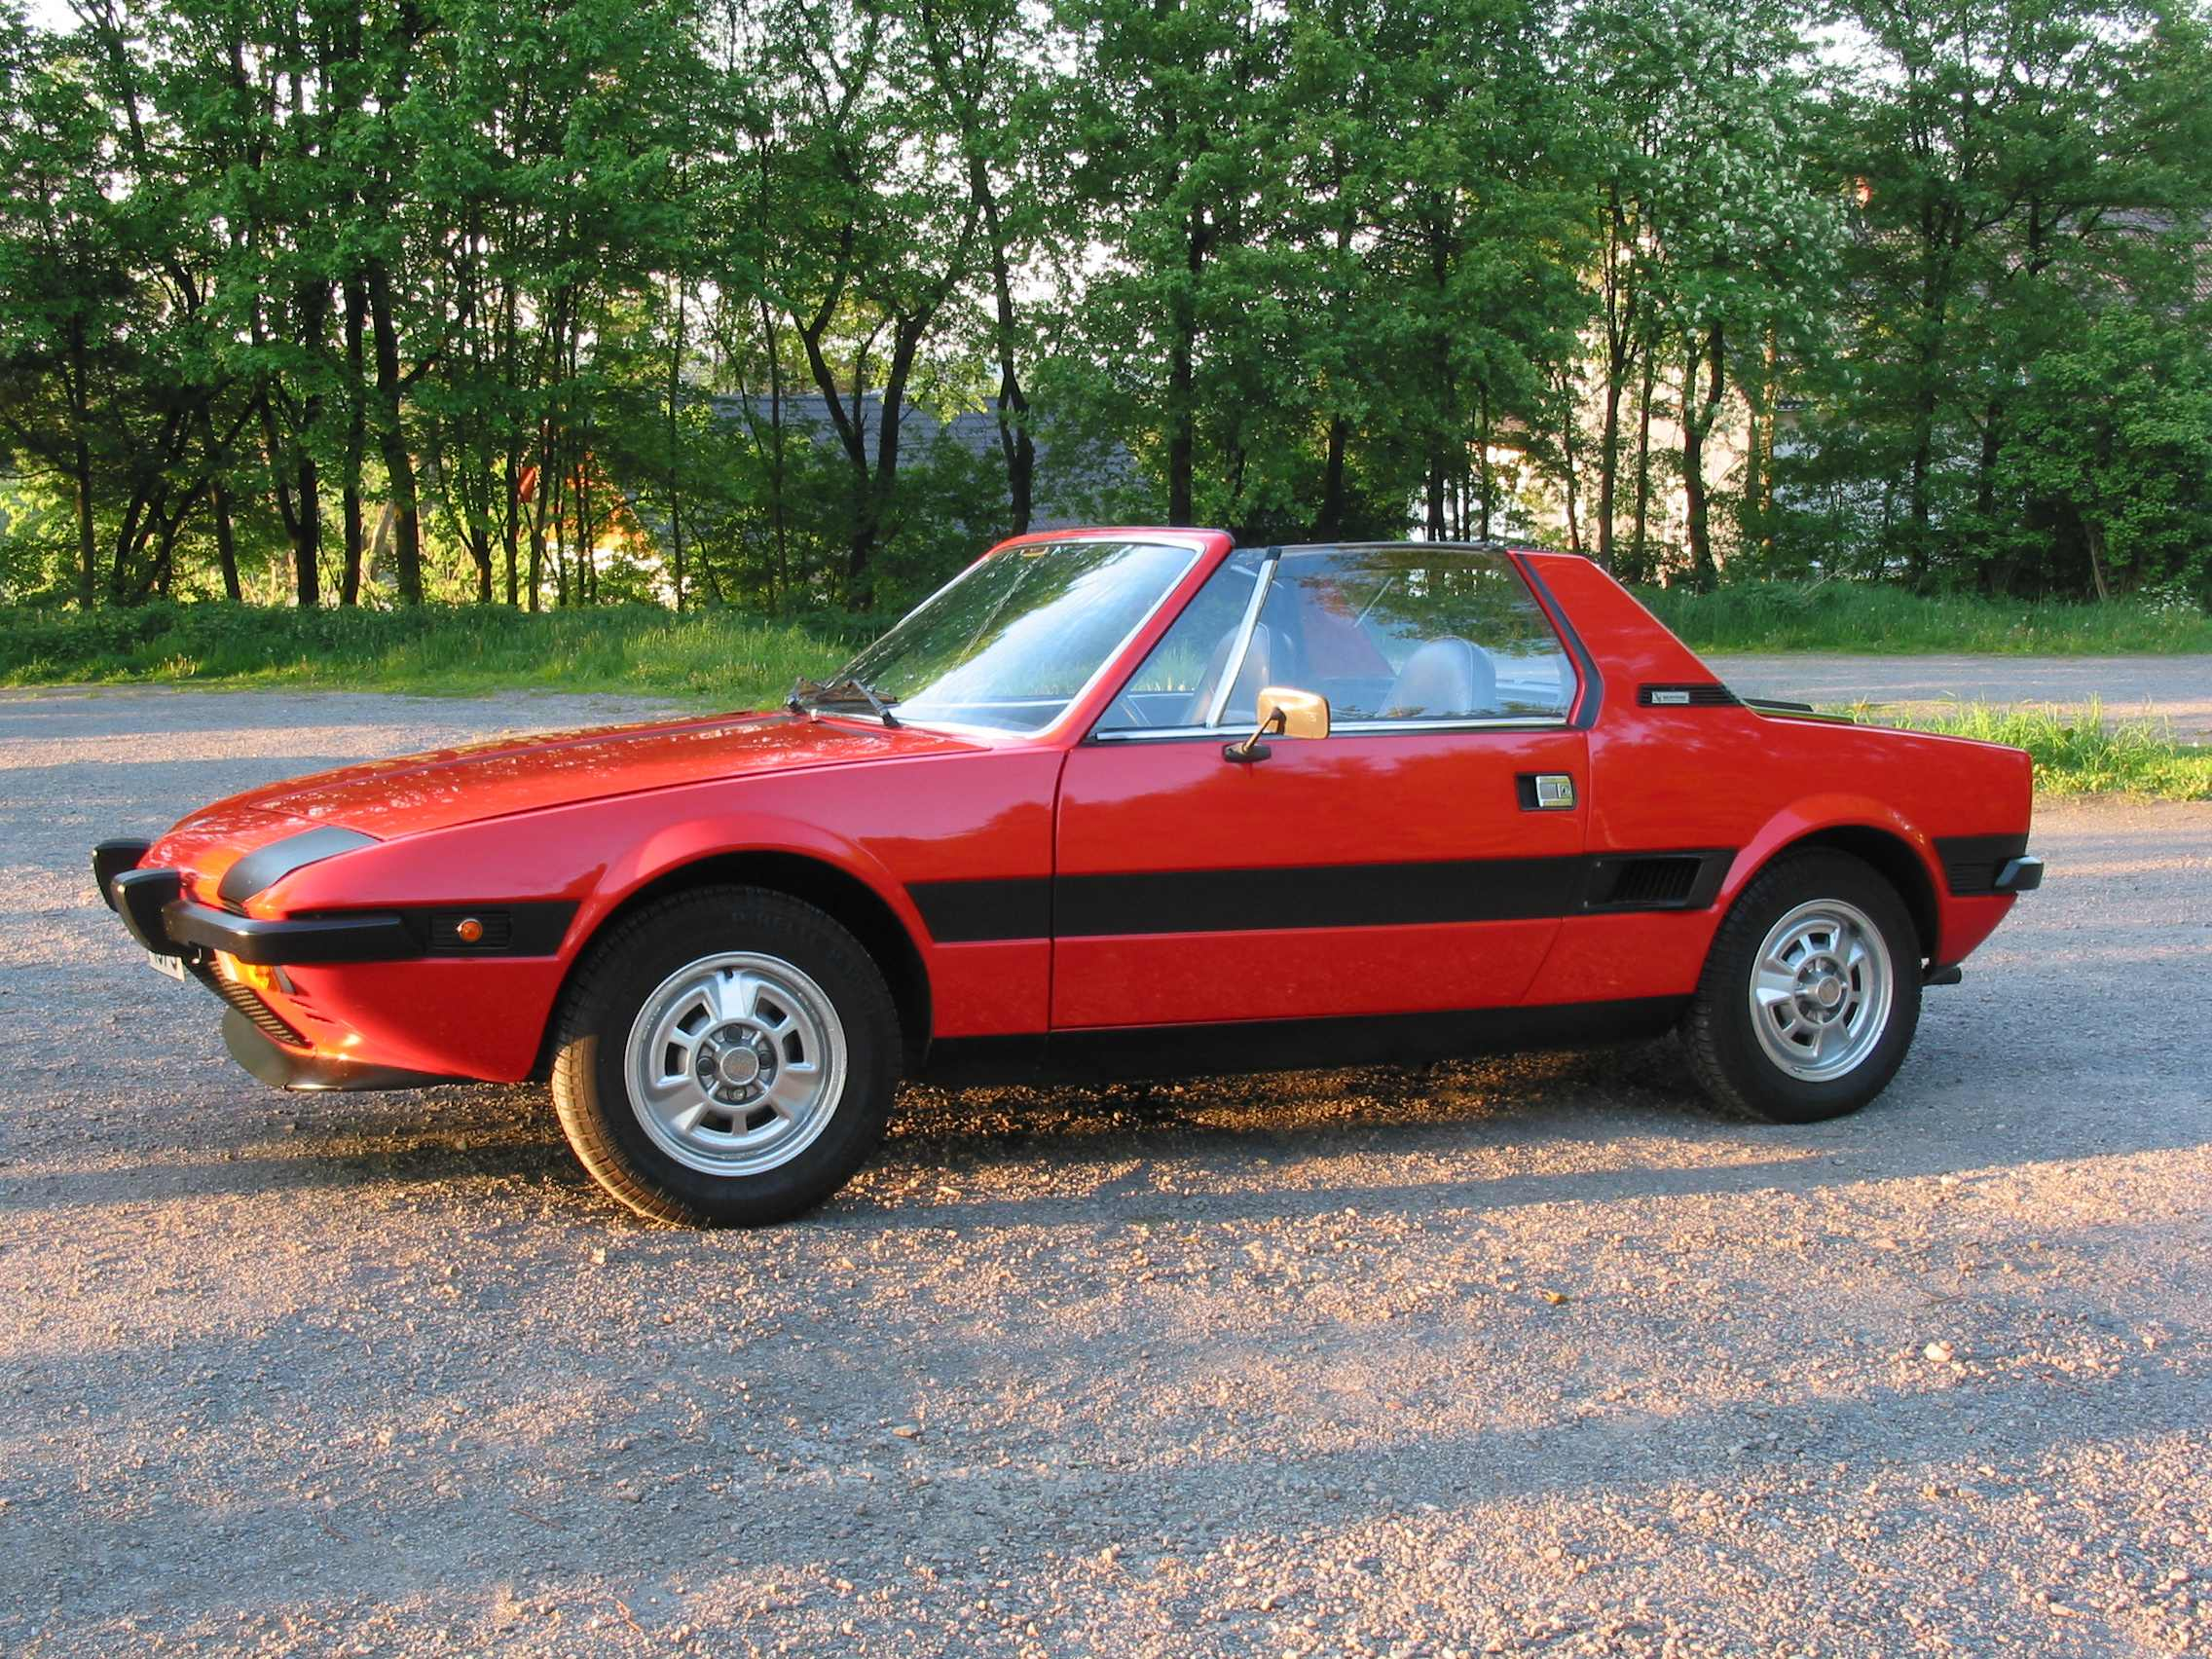 Fiat >> File:Fiat X19.jpg - Wikimedia Commons